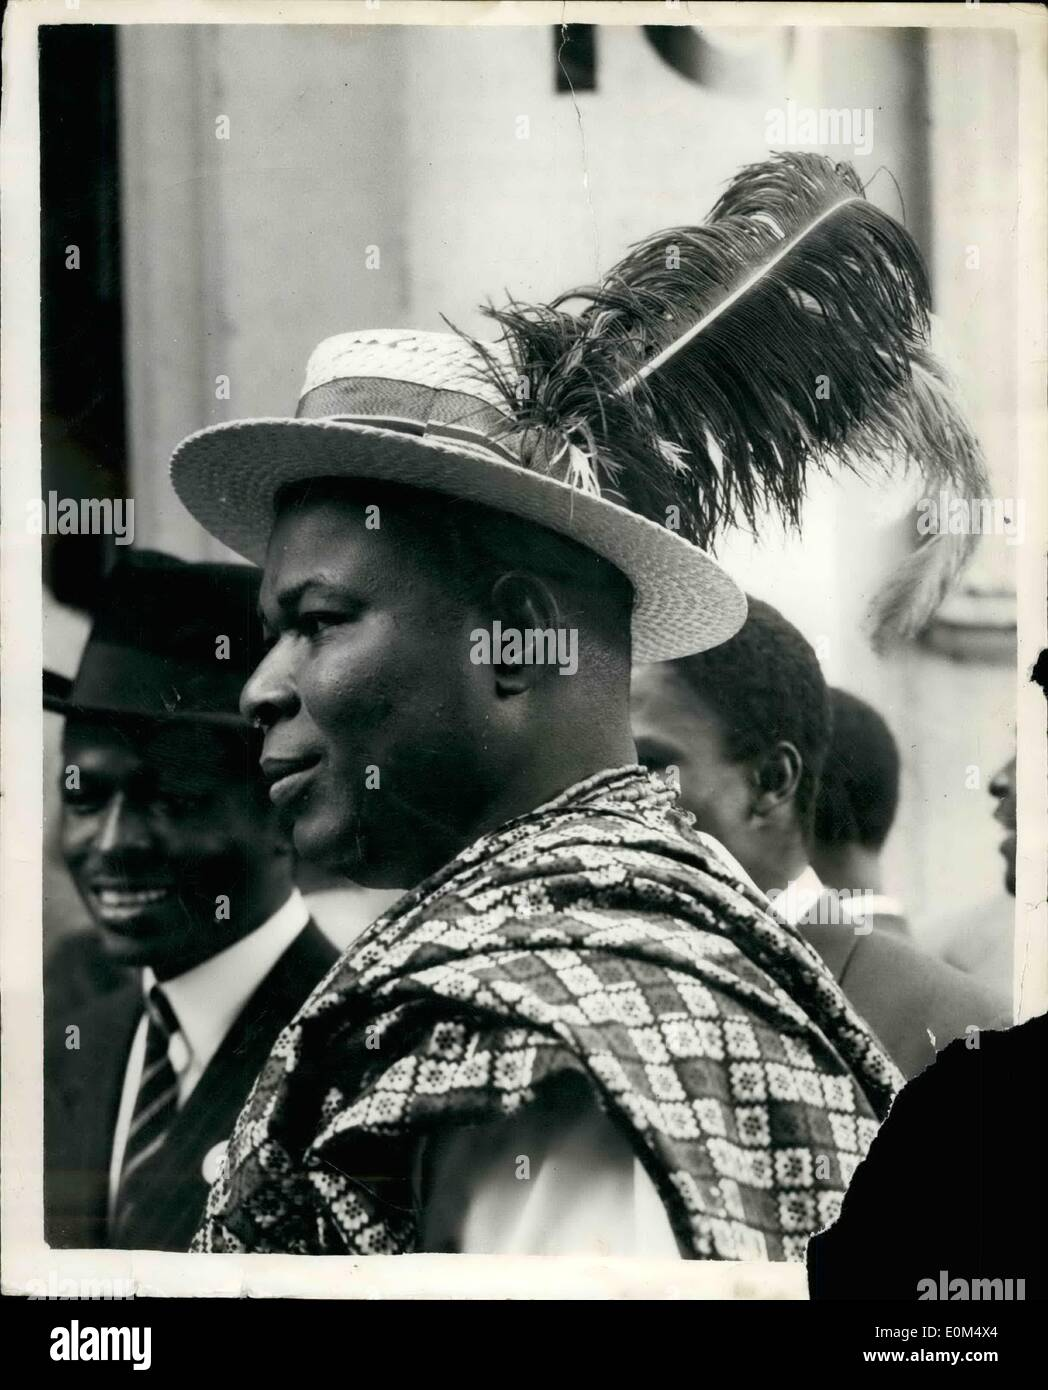 Jul. 07, 1953 - Nigerian Constitution Conference Opens in London. Chief F.S. Edah- With his Feather Trimmed Straw Hat: The Nigerian Constitution Conference Opened at 10. Carlton House Terrace, this afternoon under the leadership of Mr. Oliver Lyttleton the Colonial Secretary. Picture Shows: Wearing a unique straw hat and feather trimmings- is Chief F.S. Edah M.H.A. as he arrives at 10. Carlton House Terrace this afternoon. - Stock Image